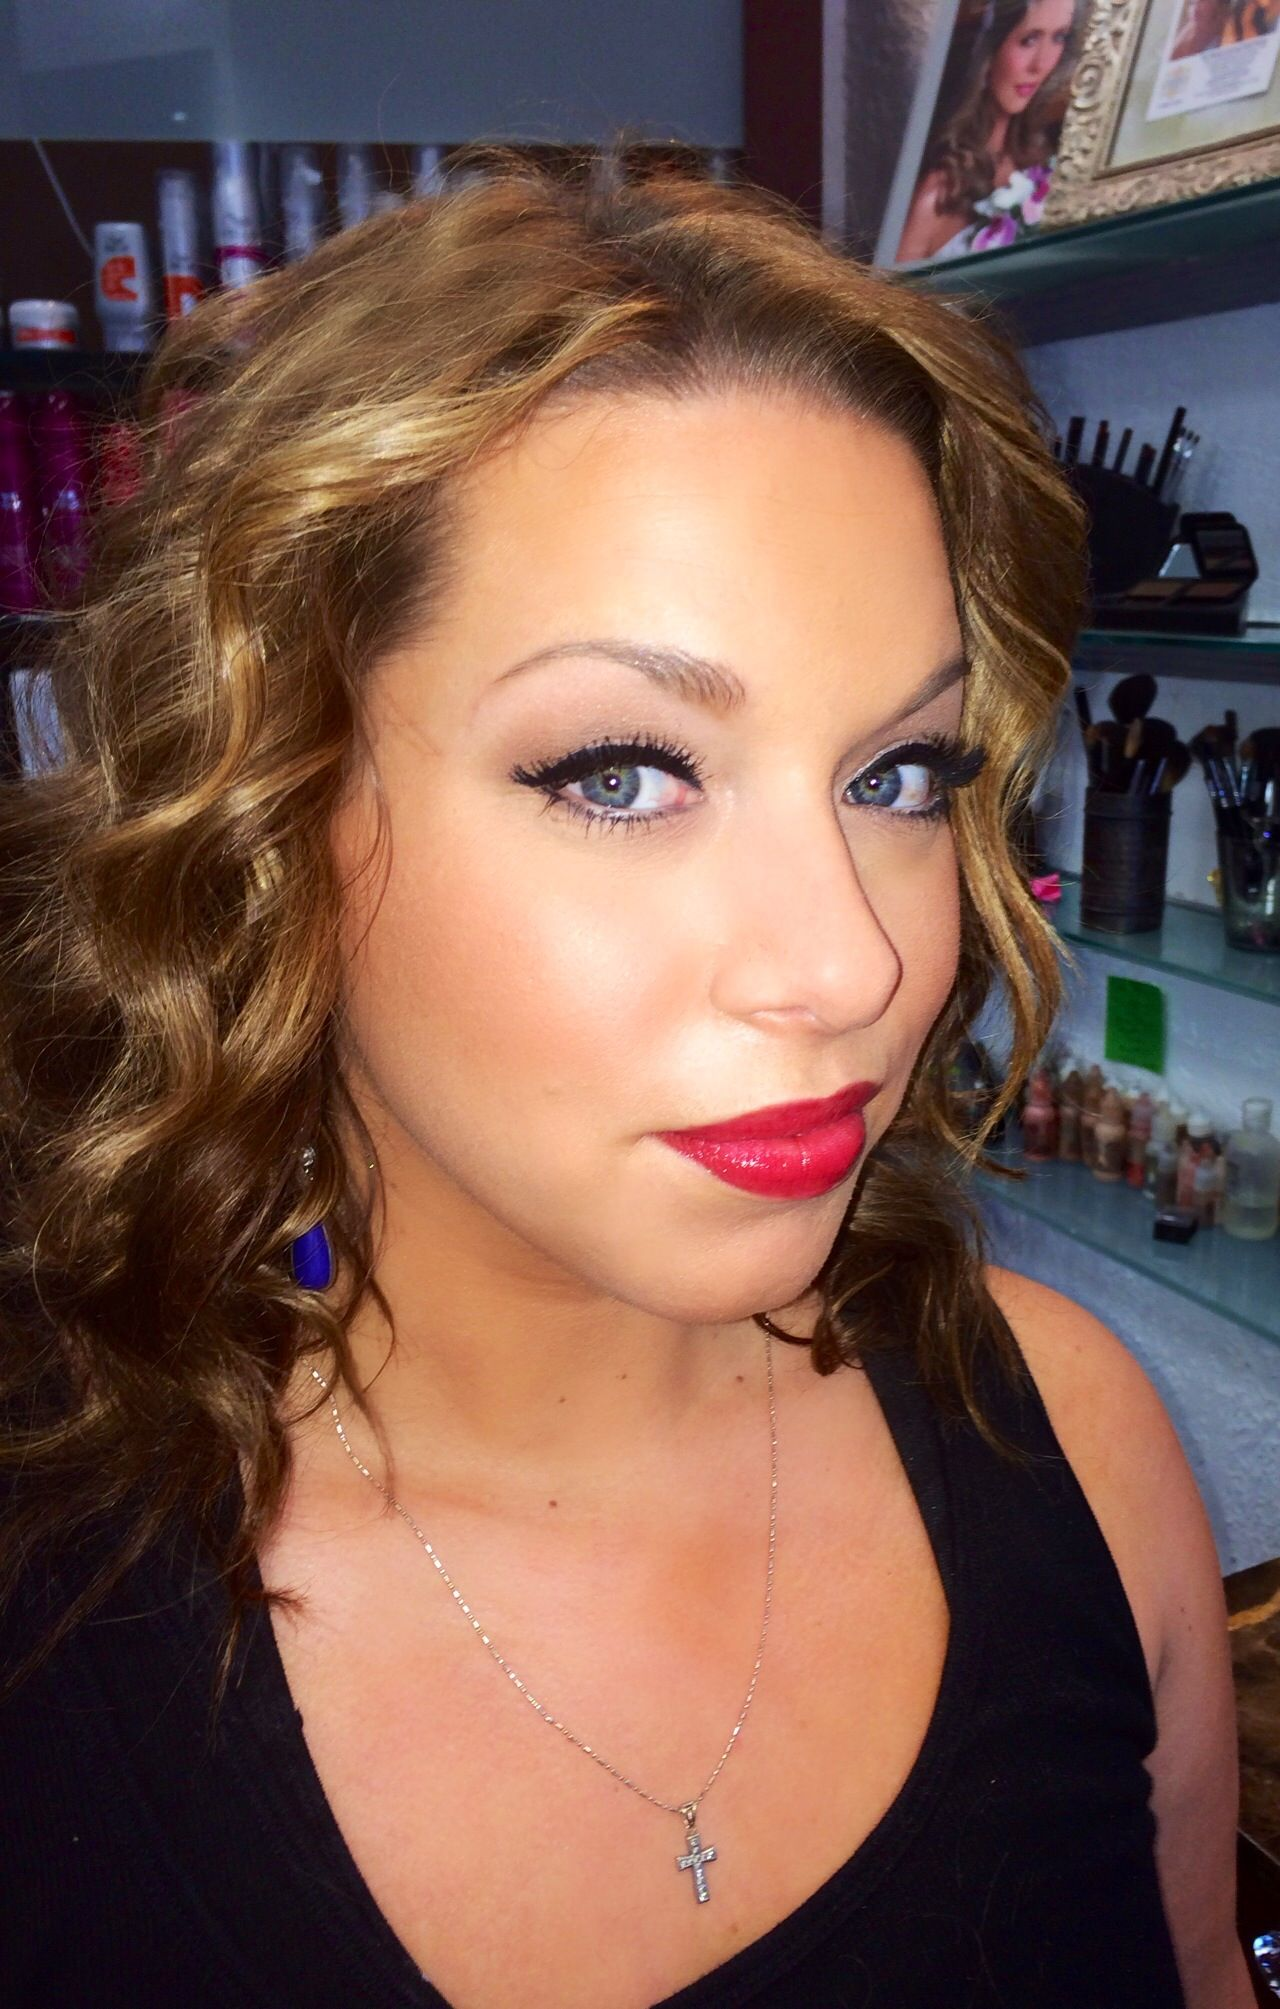 Classic Hollywood Makeup By Valerie McHale